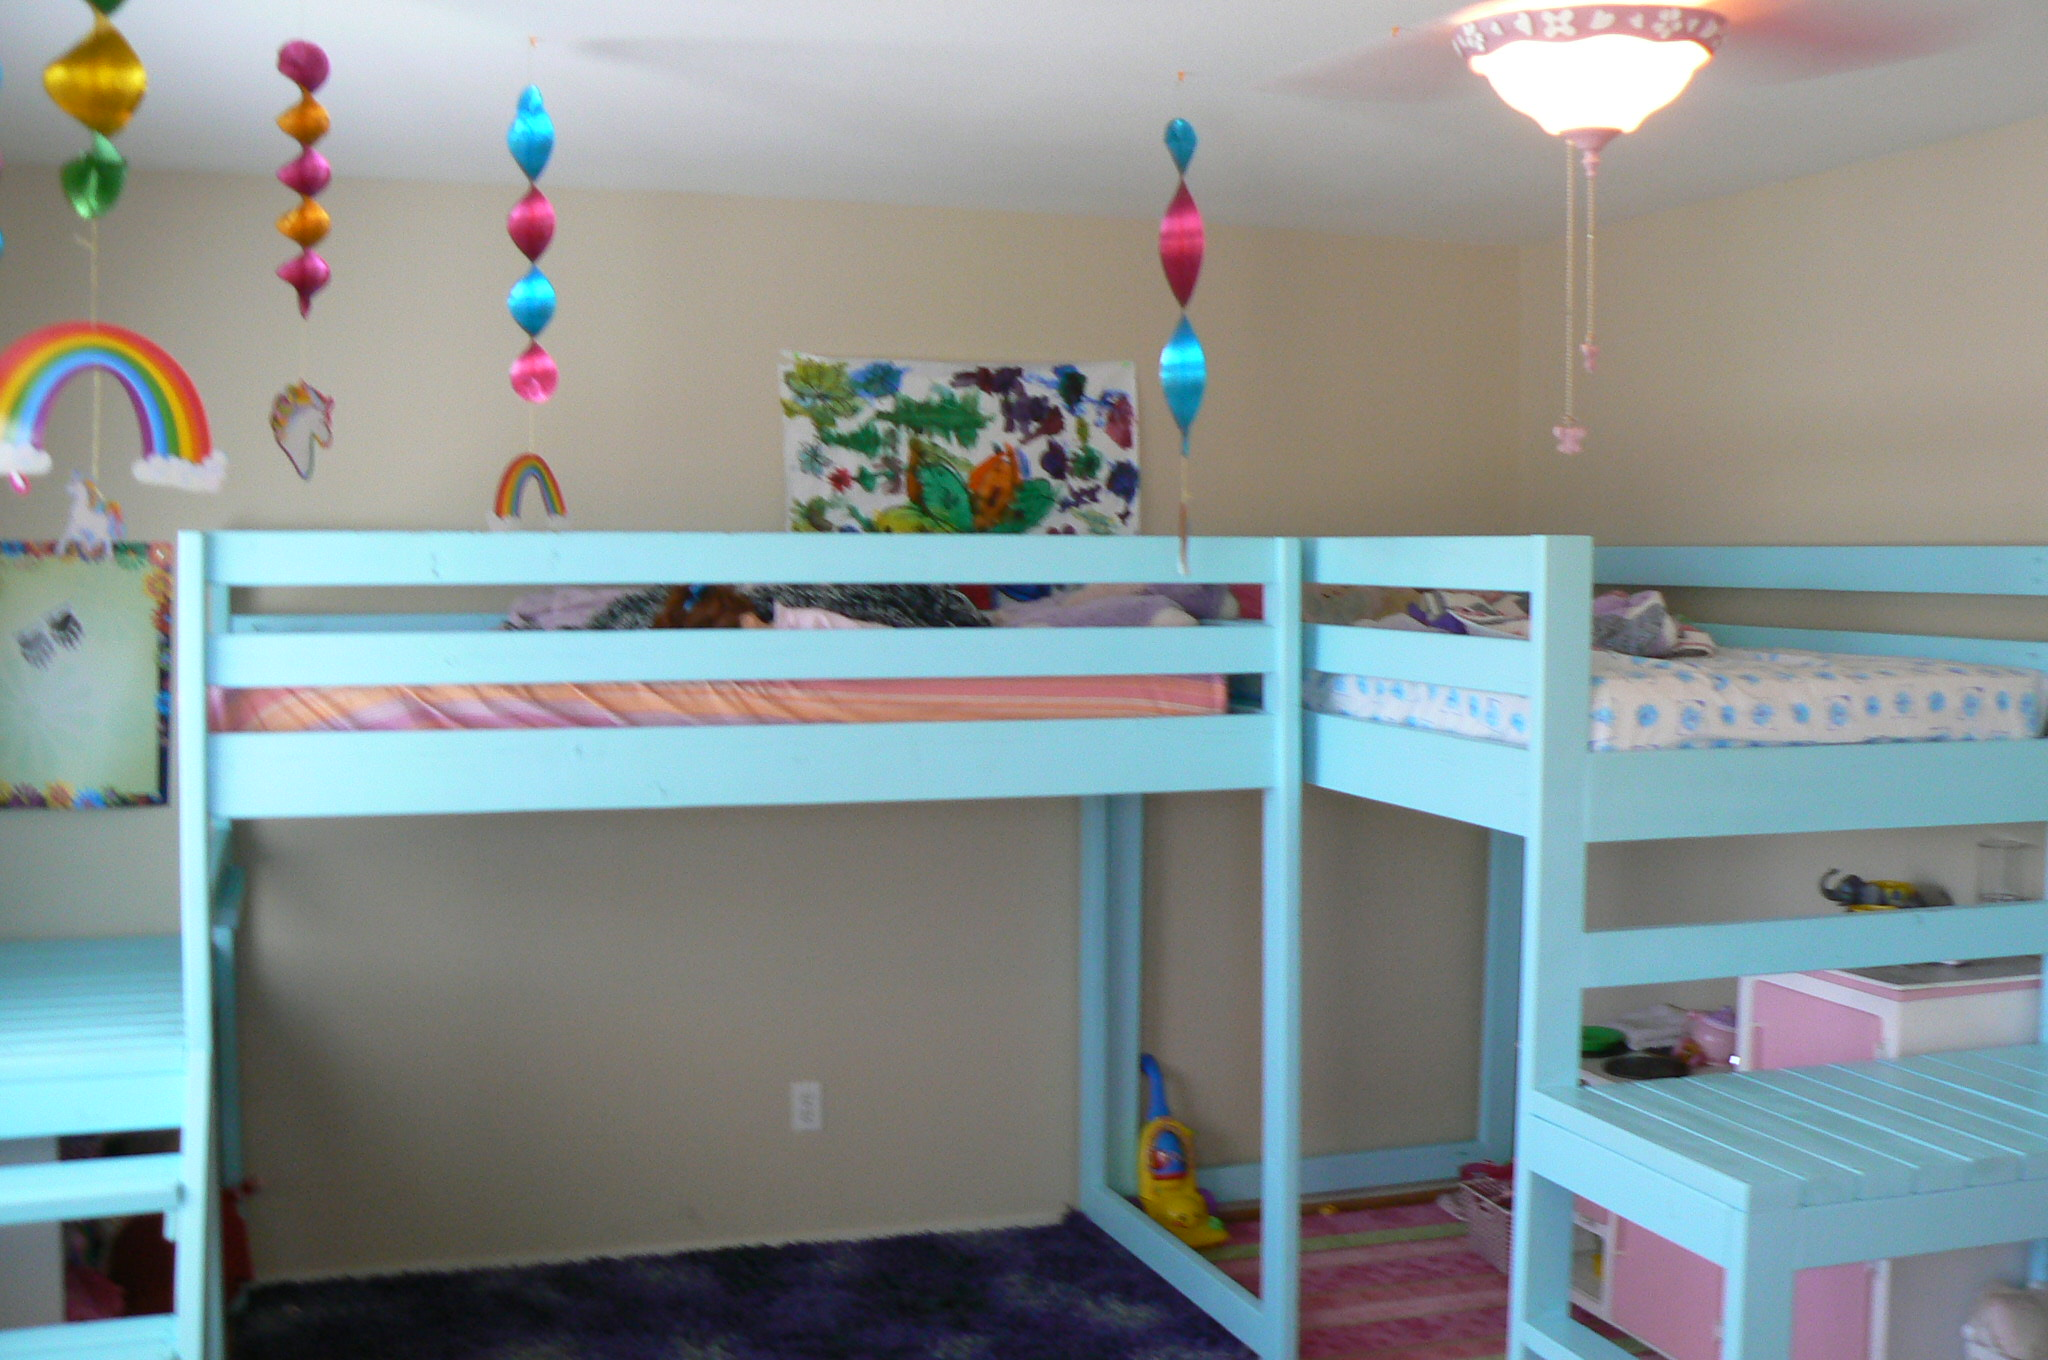 L Shaped Bunk Bed Plans | BED PLANS DIY & BLUEPRINTS